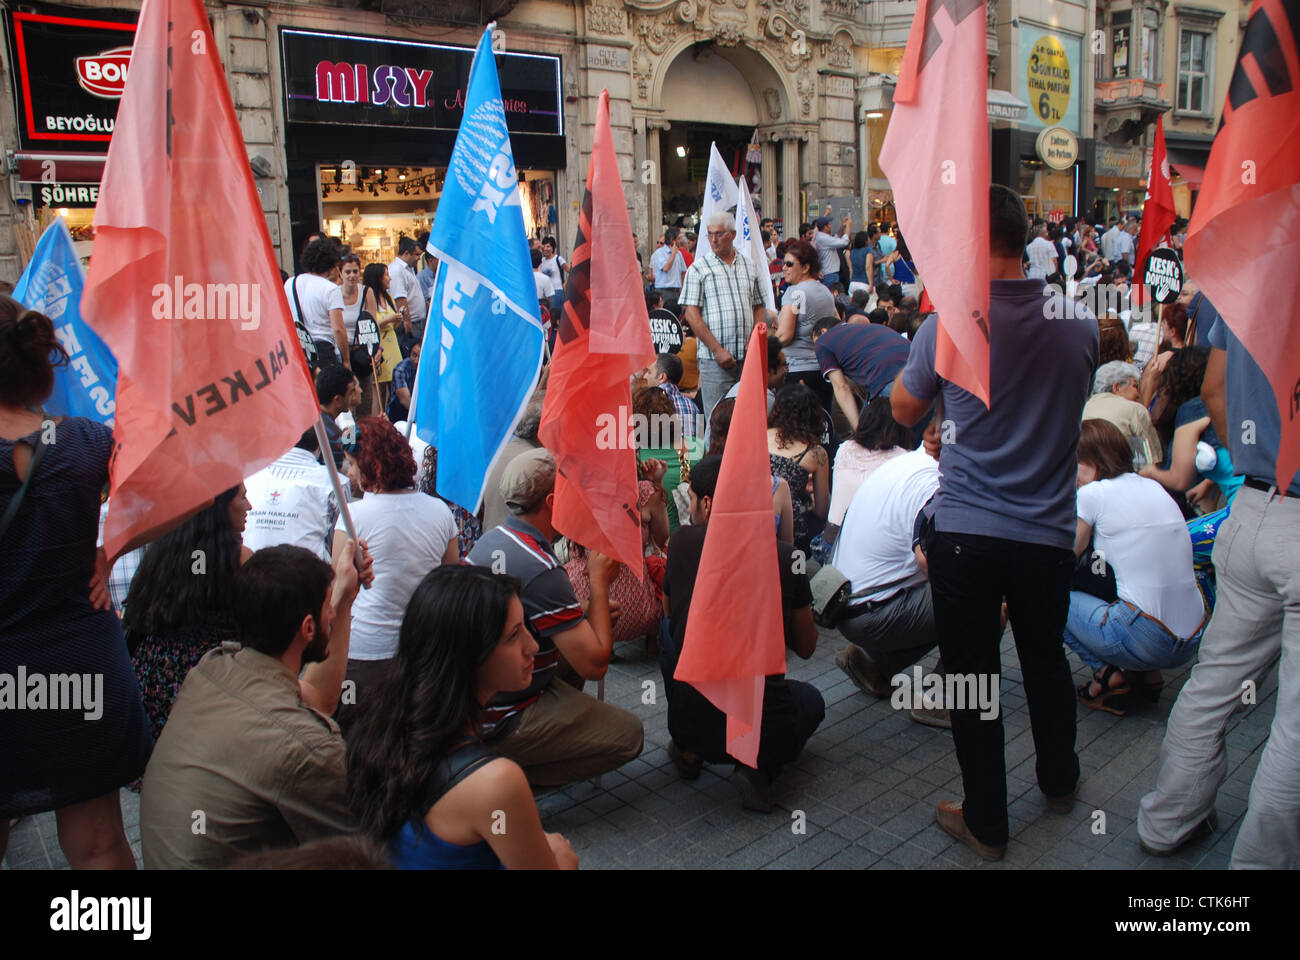 An anti-government demonstration in the heart of Istanbul. Picture by: Adam Alexxander/Alamy - Stock Image